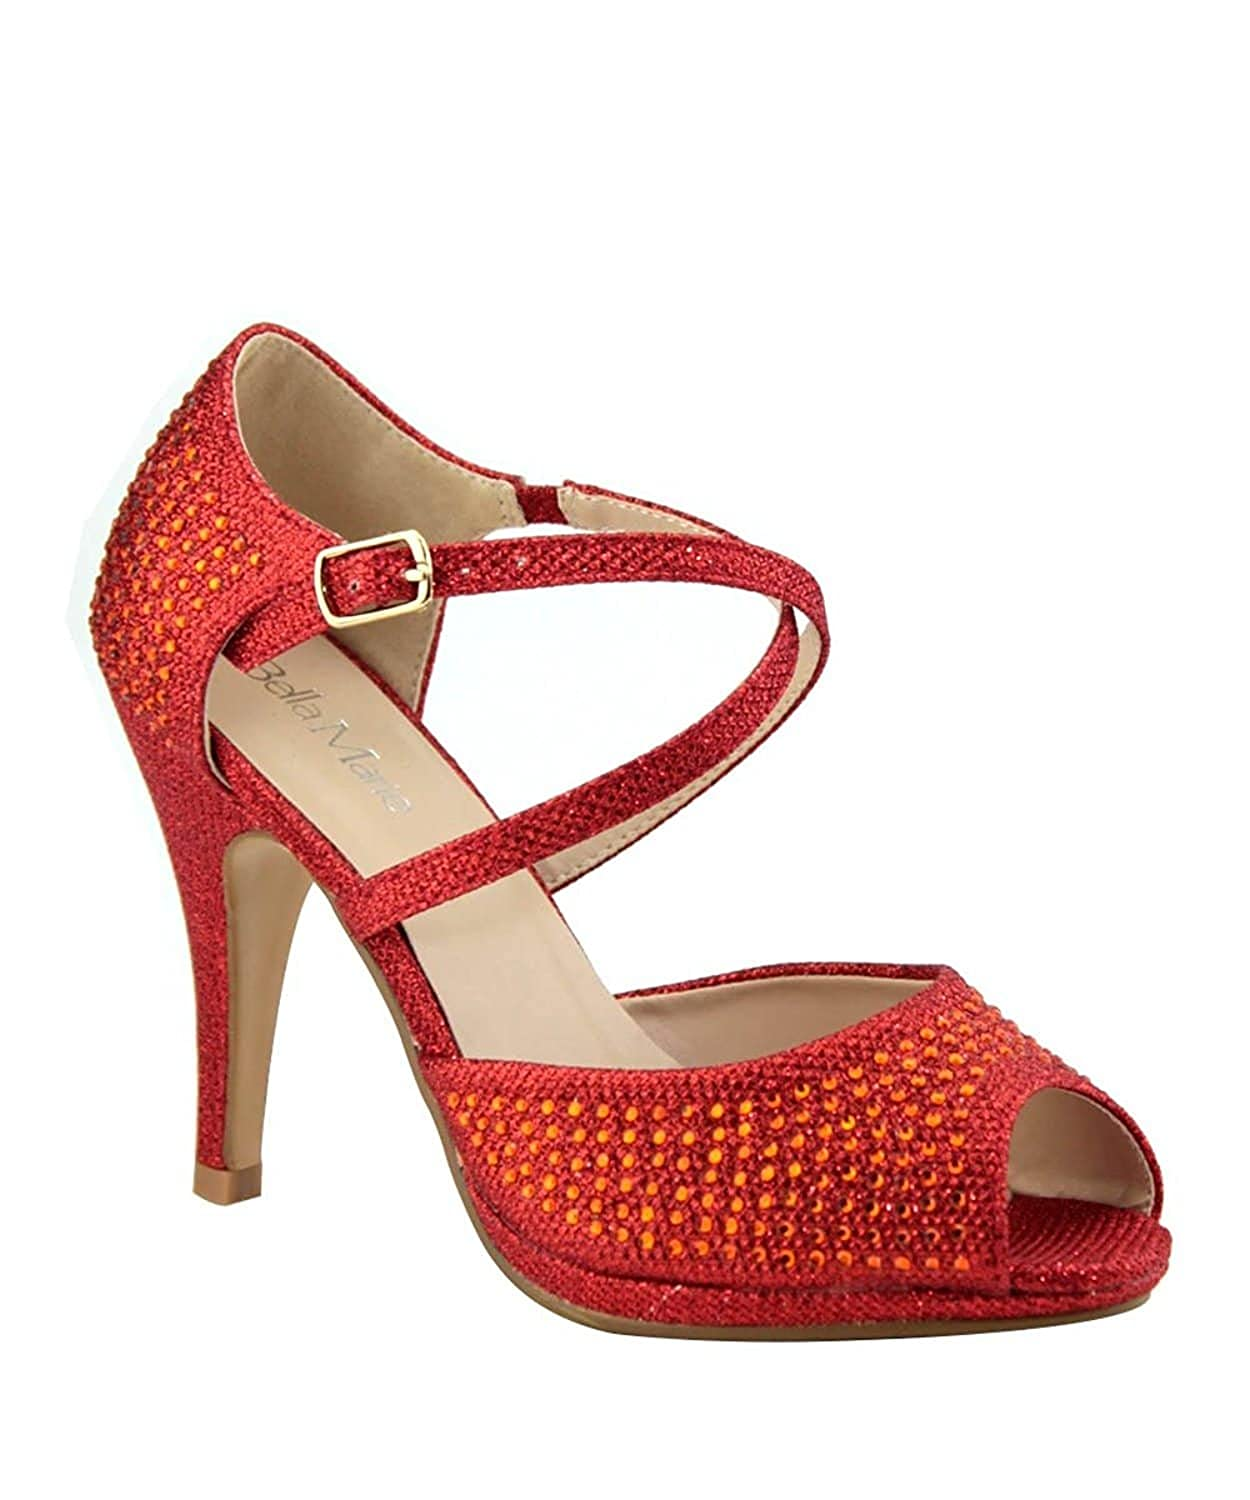 8bdb09855198 Top1  Bella Marie Shania-1 Women s Peep Toe Rhinestone Glitter Crossing  Strap Dance Sandals